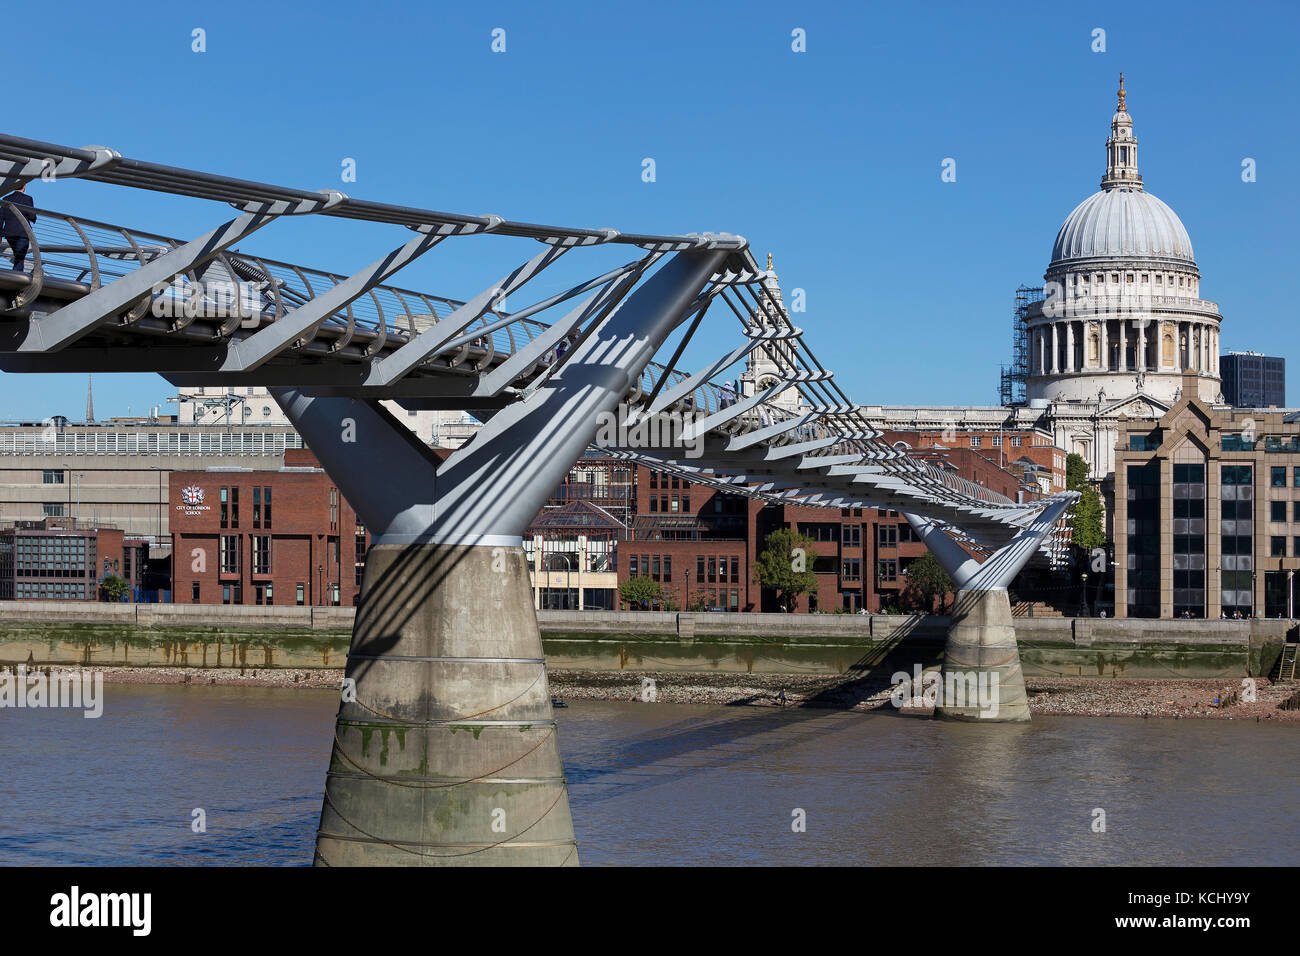 LONDON - SEPTEMBER 2017; Millennium Bridge with St. Paul's Cathedral on the background. - Stock Image